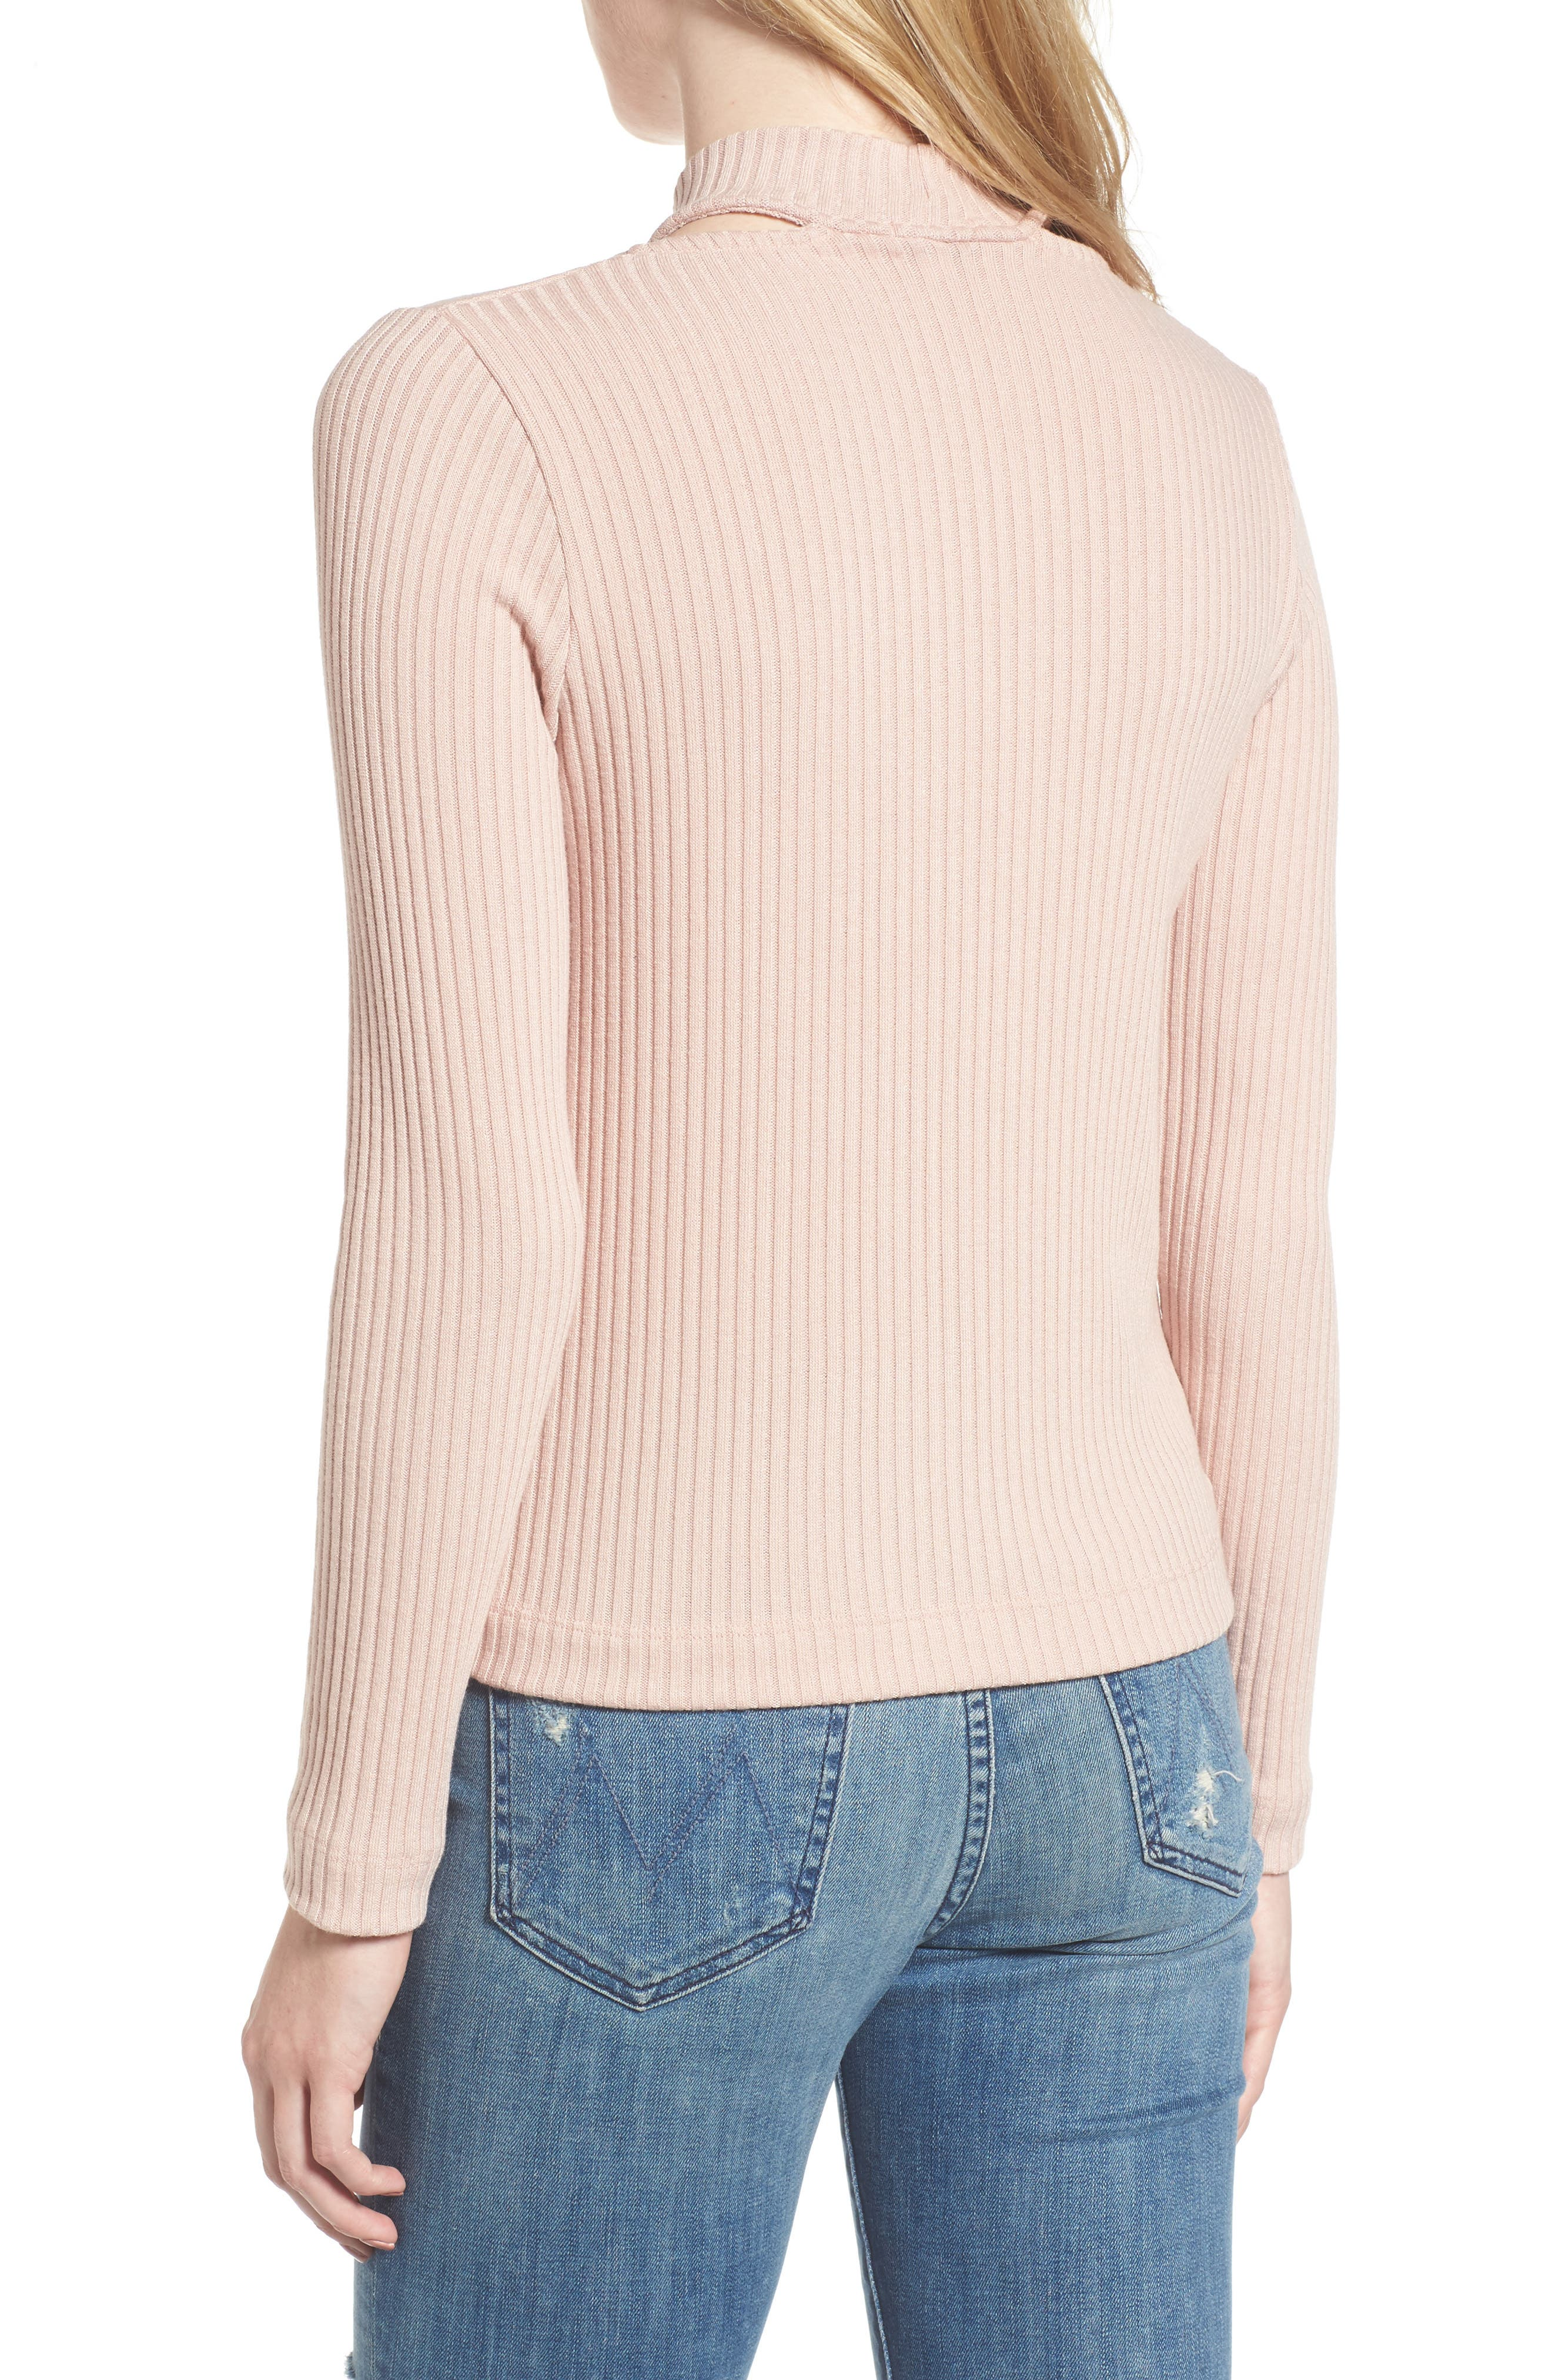 Sylvie Ribbed Mock Neck Sweater,                             Alternate thumbnail 2, color,                             Pink Beige